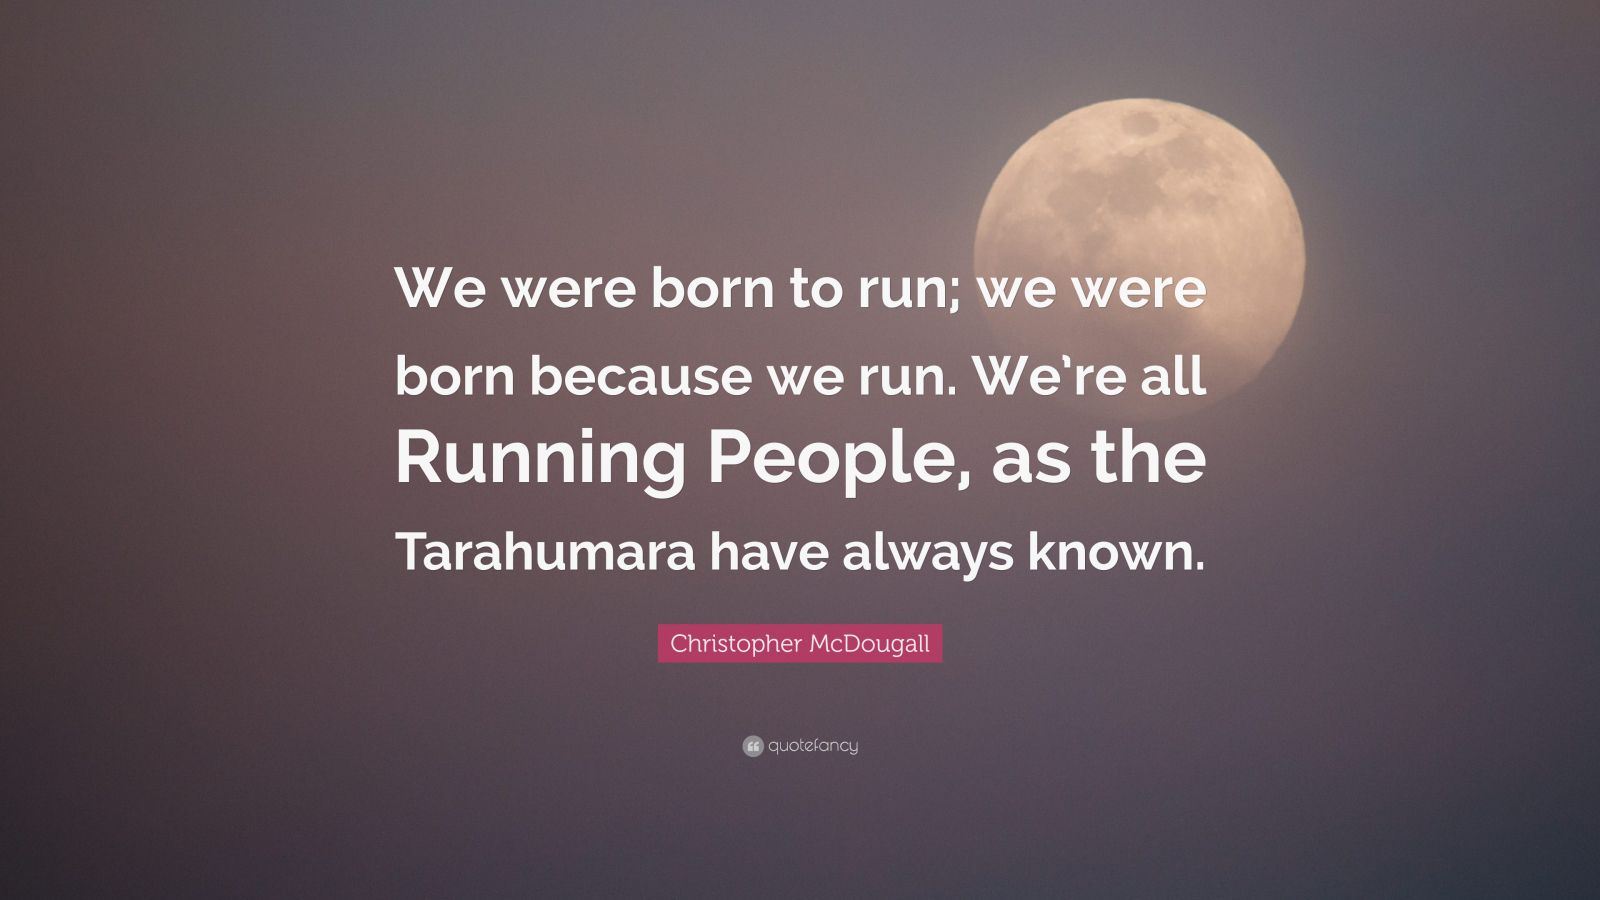 """Christopher McDougall Quote: """"We were born to run; we were born because we run. We're all Running People, as the Tarahumara have always known."""""""